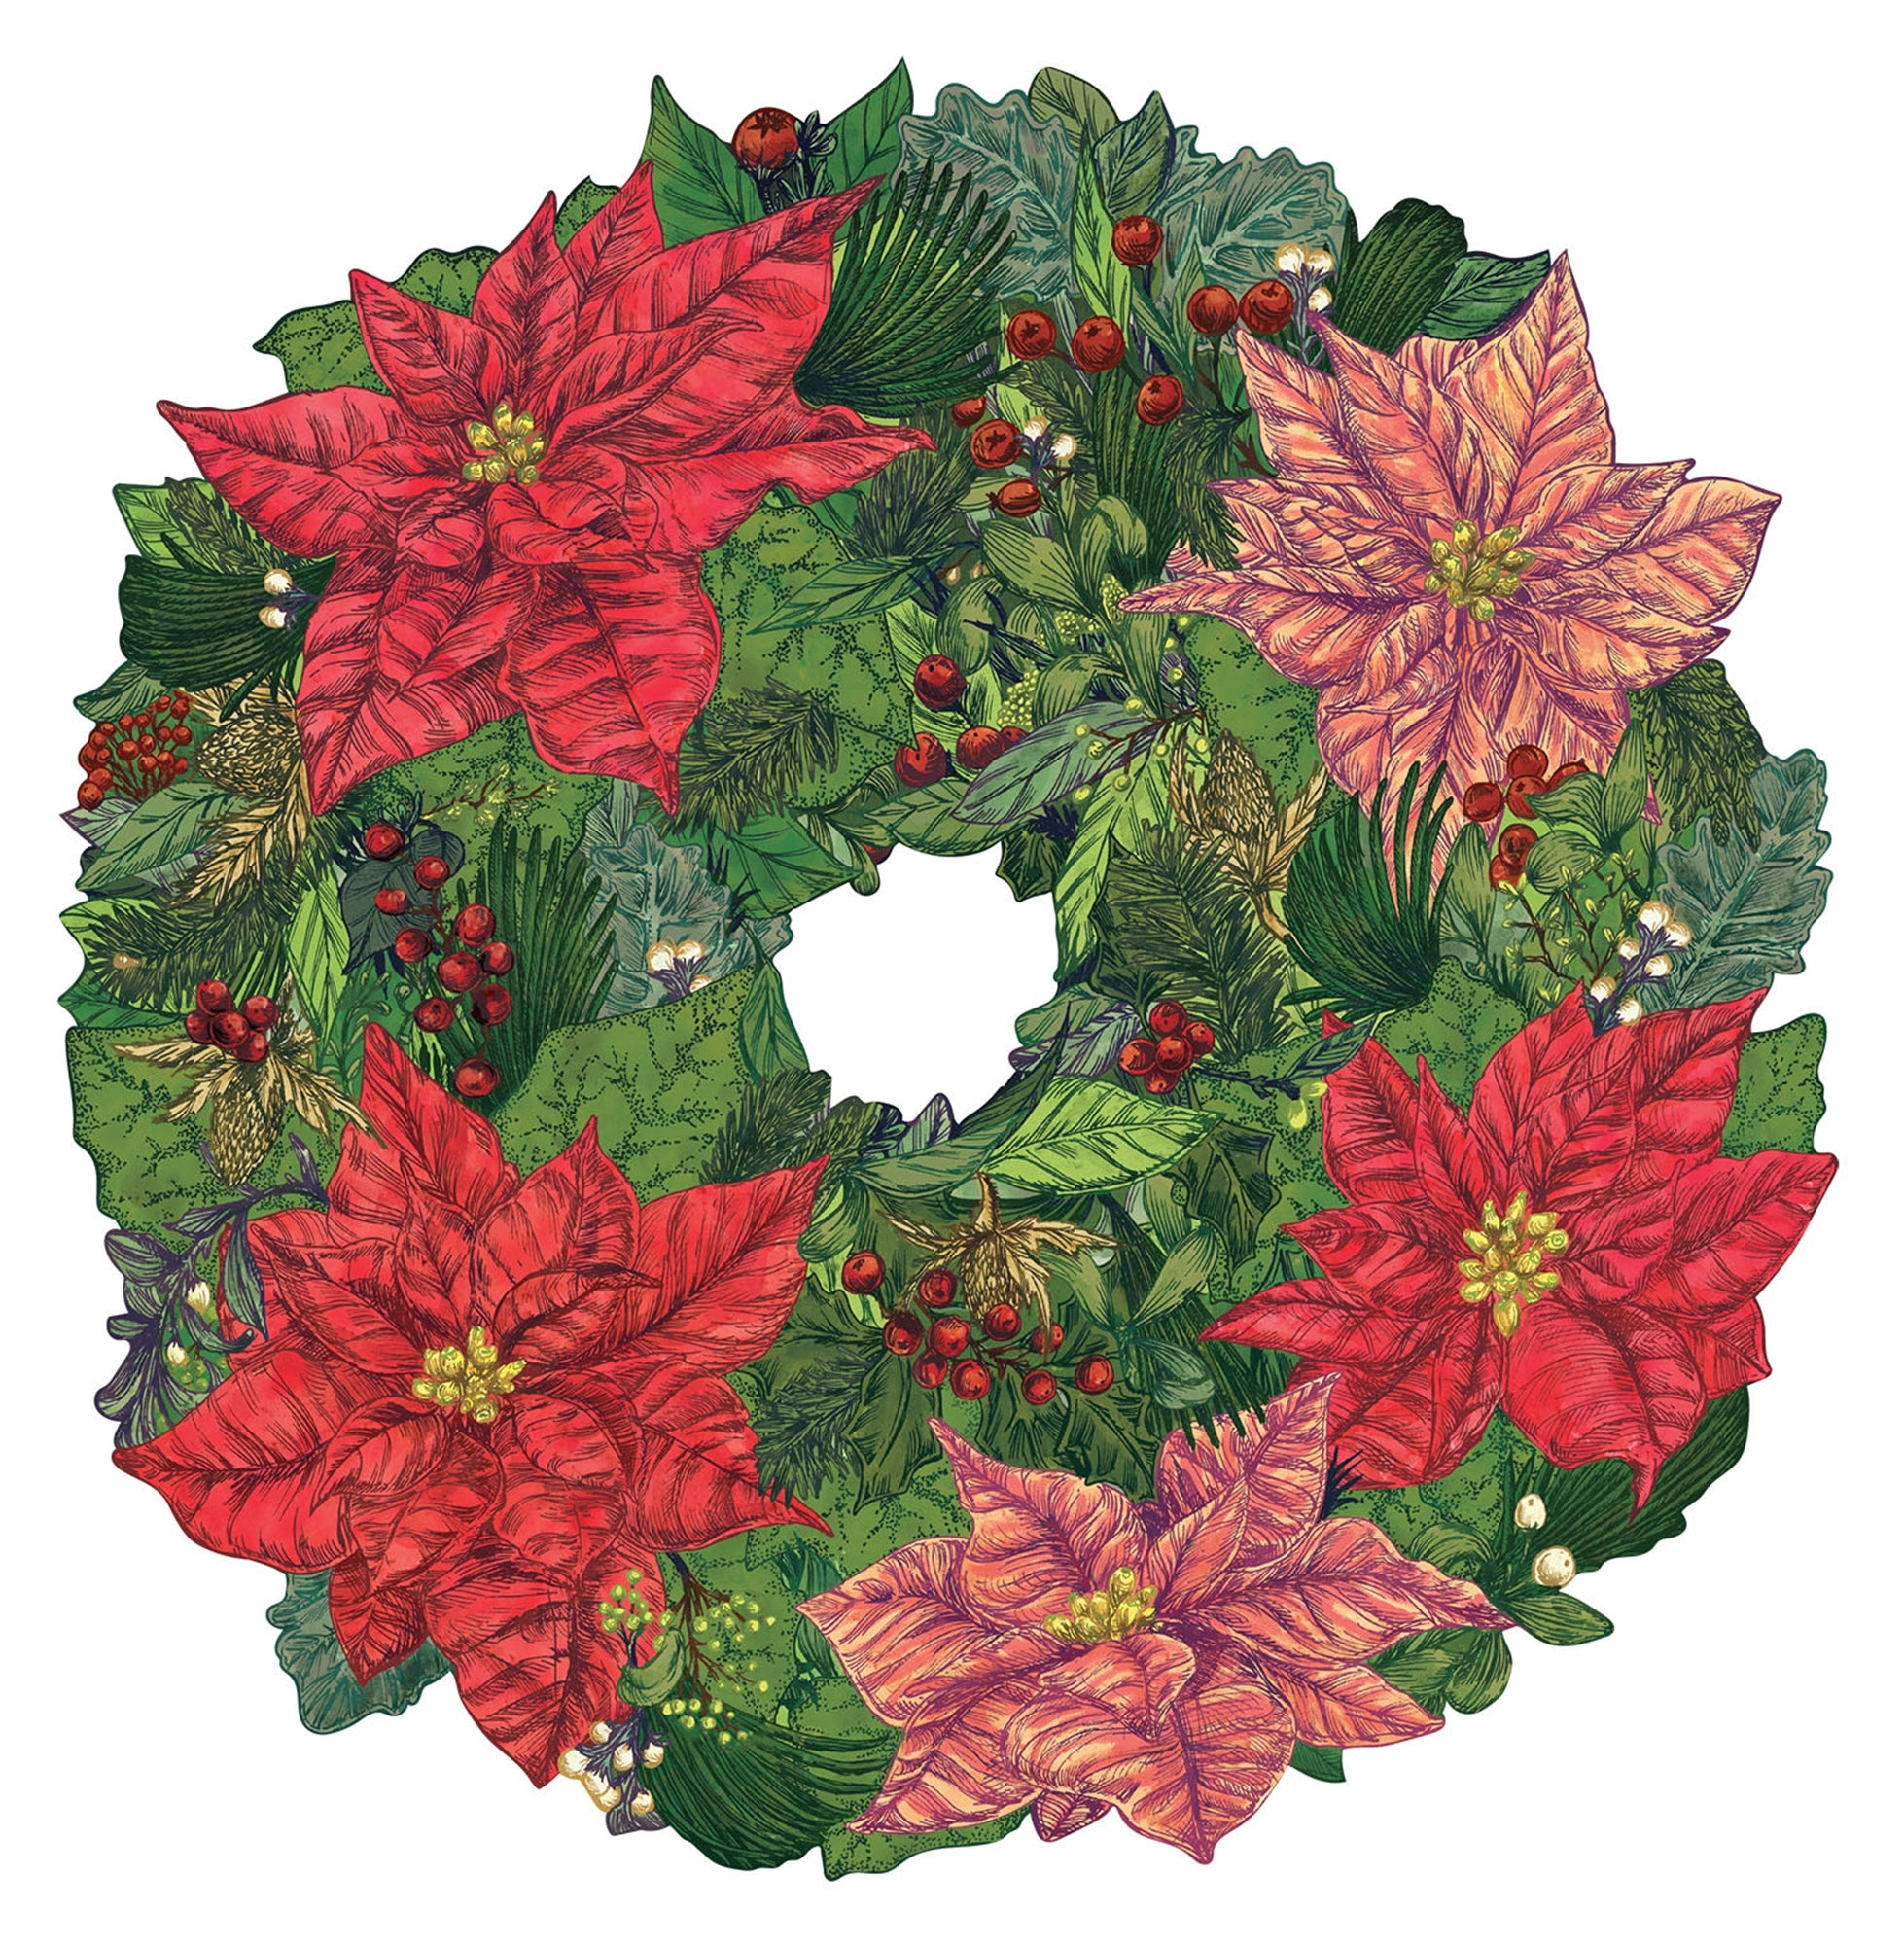 Hester & Cook Poinsettia Wreath Die Cut Paper Placemats